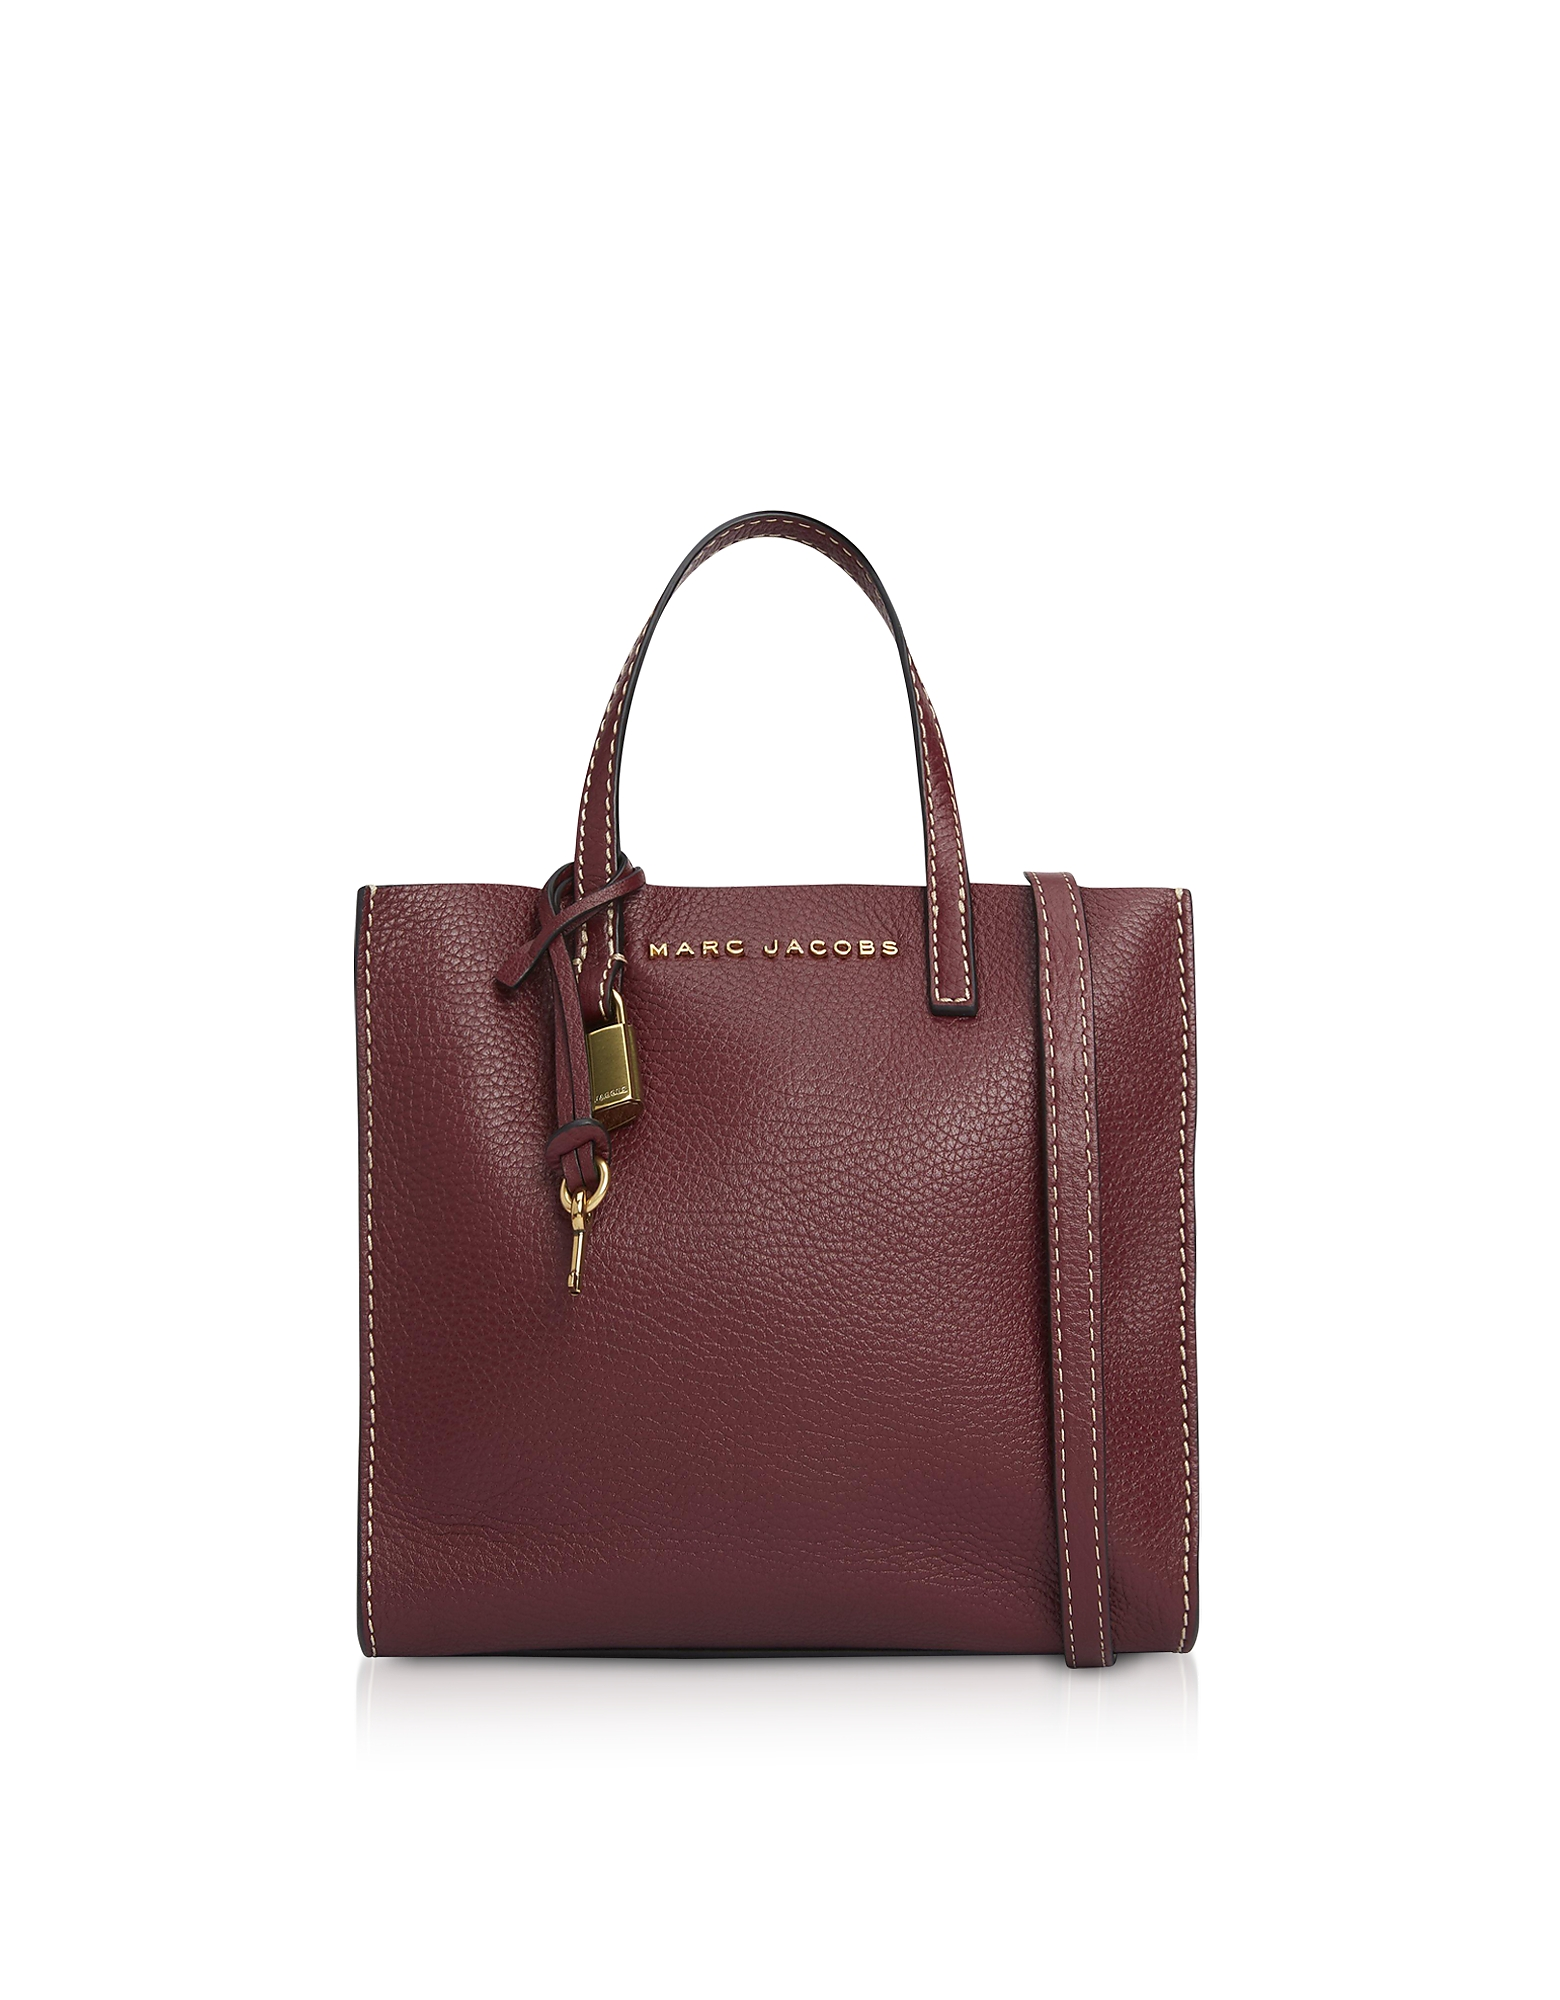 Marc Jacobs Handbags, Grainy Leather The Mini Grind Tote Bag